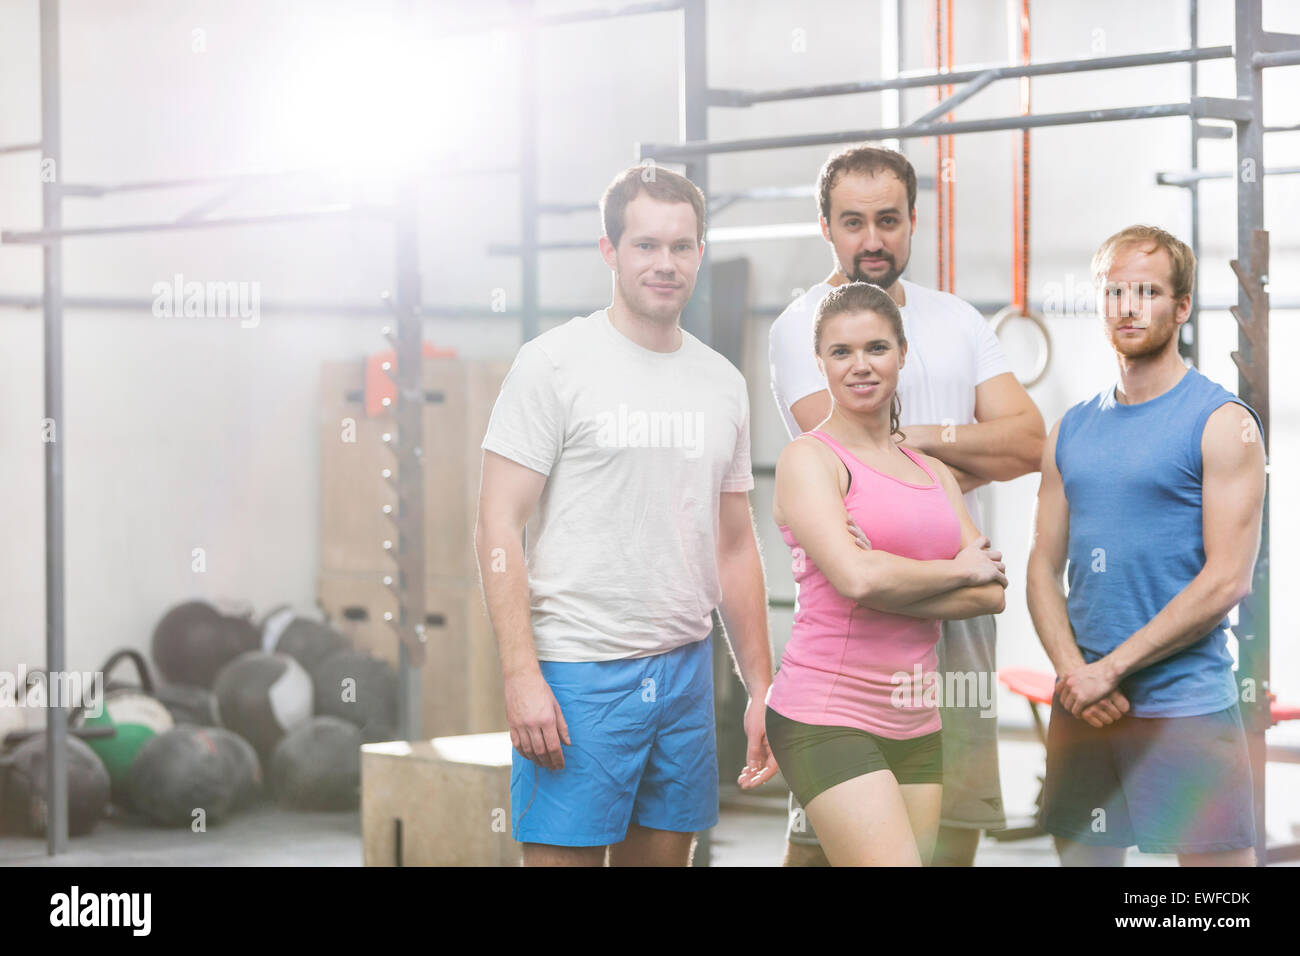 Portrait of confident men and women standing at crossfit gym - Stock Image